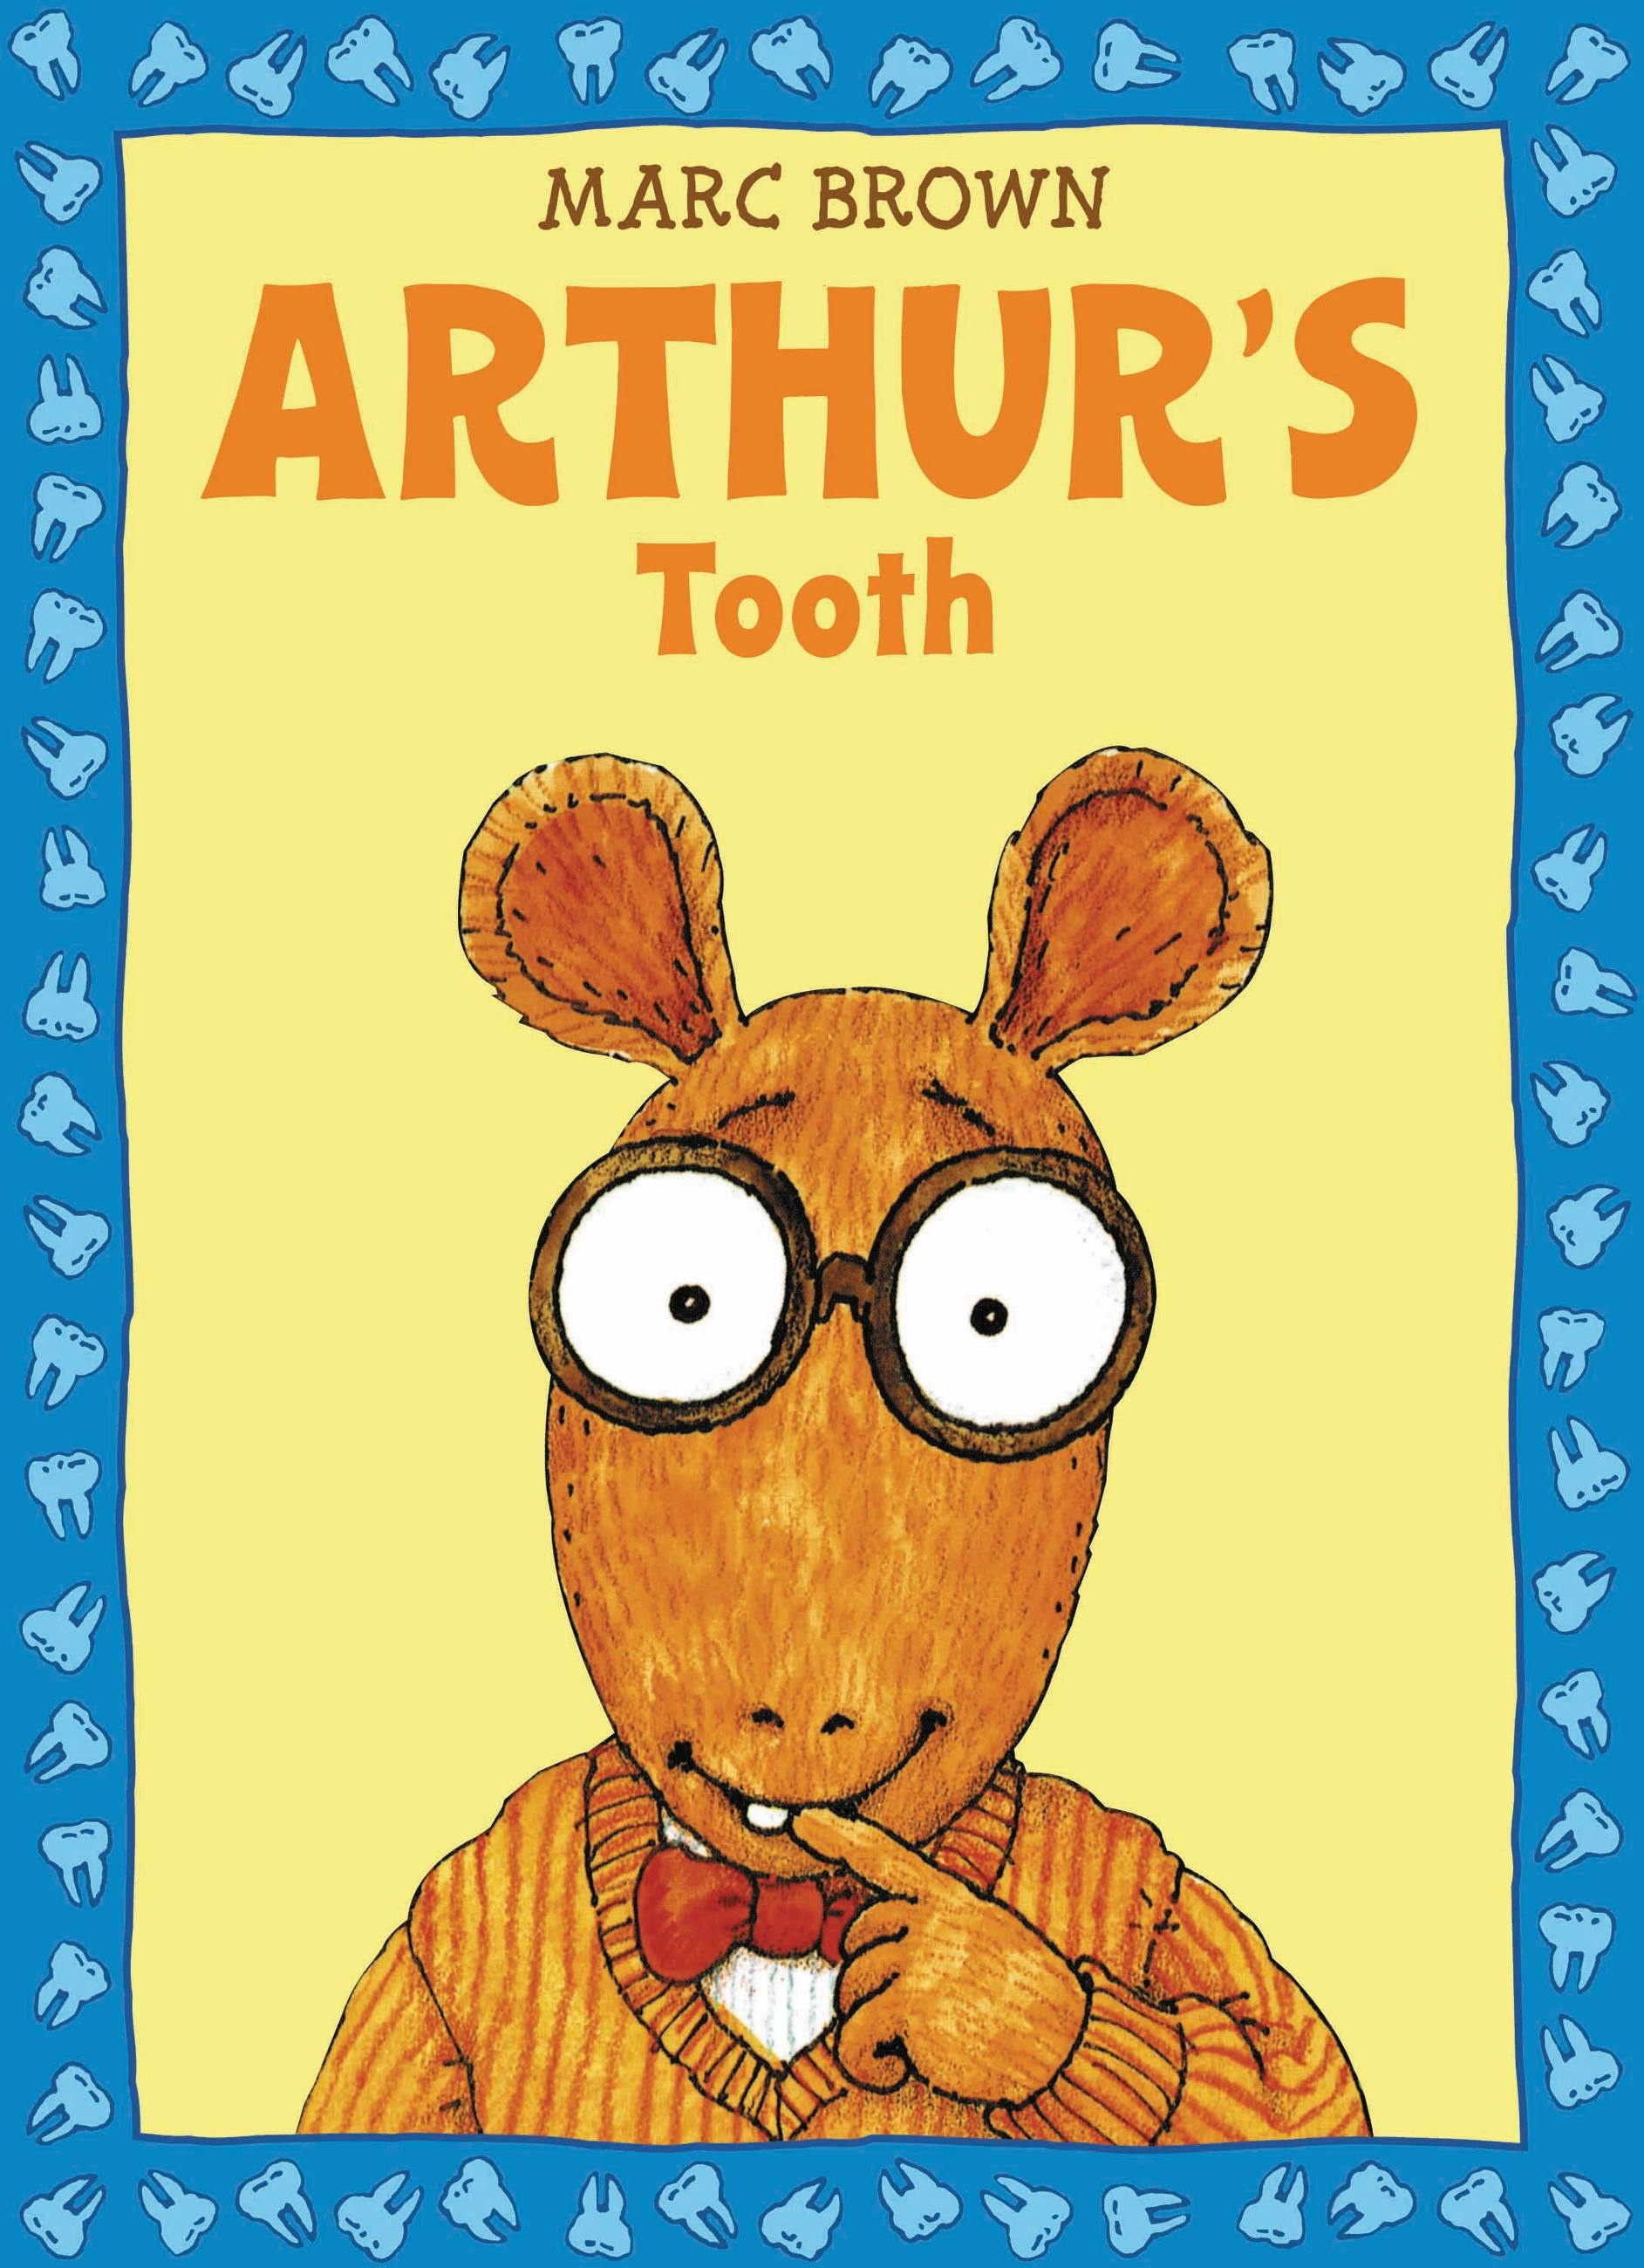 arthur's tooth by marc brown | little, brown books for young readers